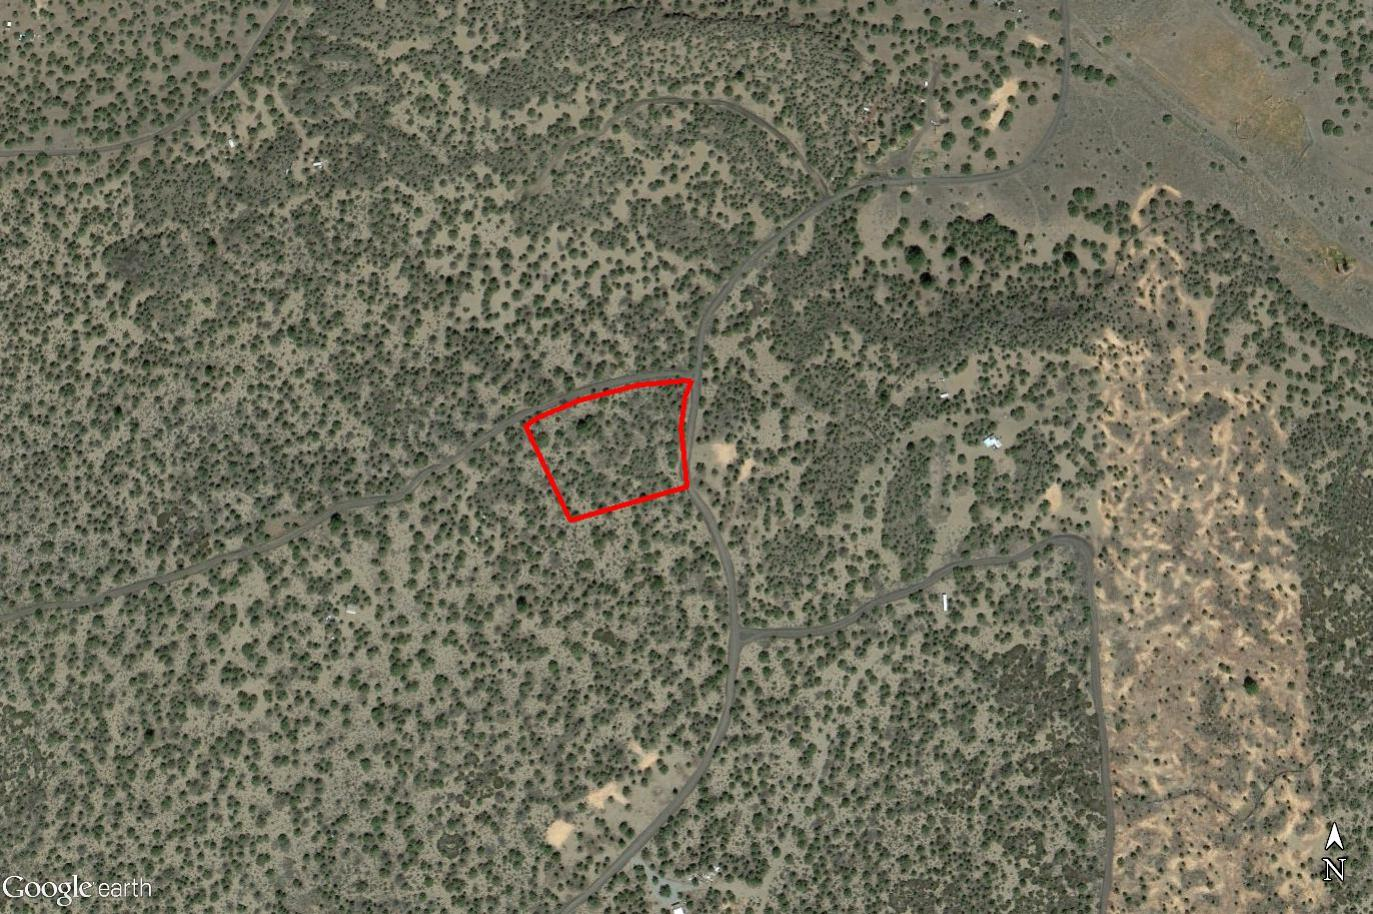 Over Two Acre Property About 16 miles NE of Weed - Image 2